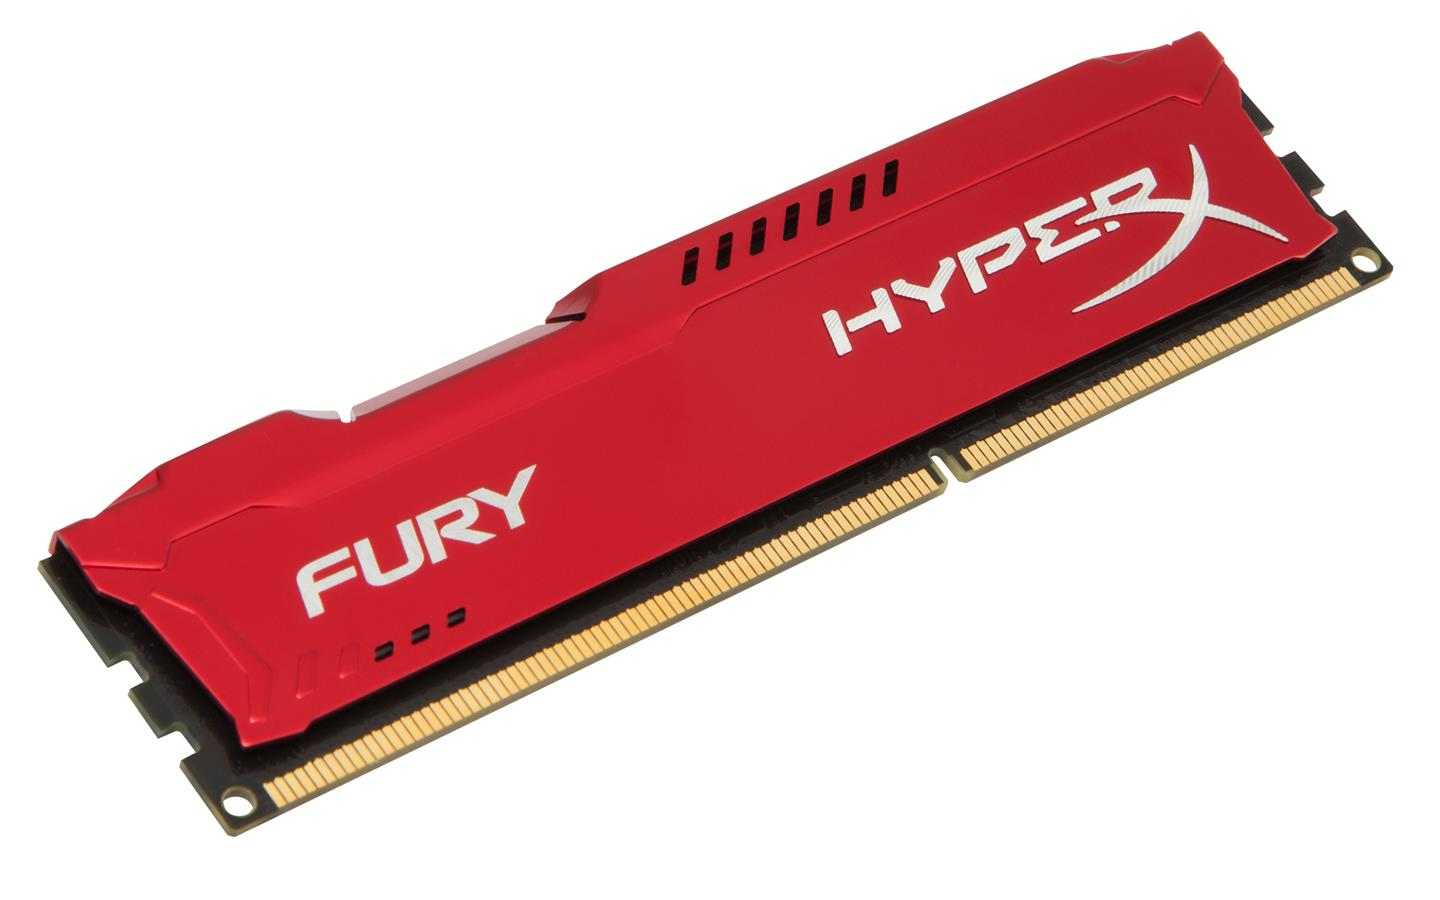 Kingston HyperX Fury Desktop 4GB 8GB DDR3 1866MHZ Dimm Ram HX318C10F